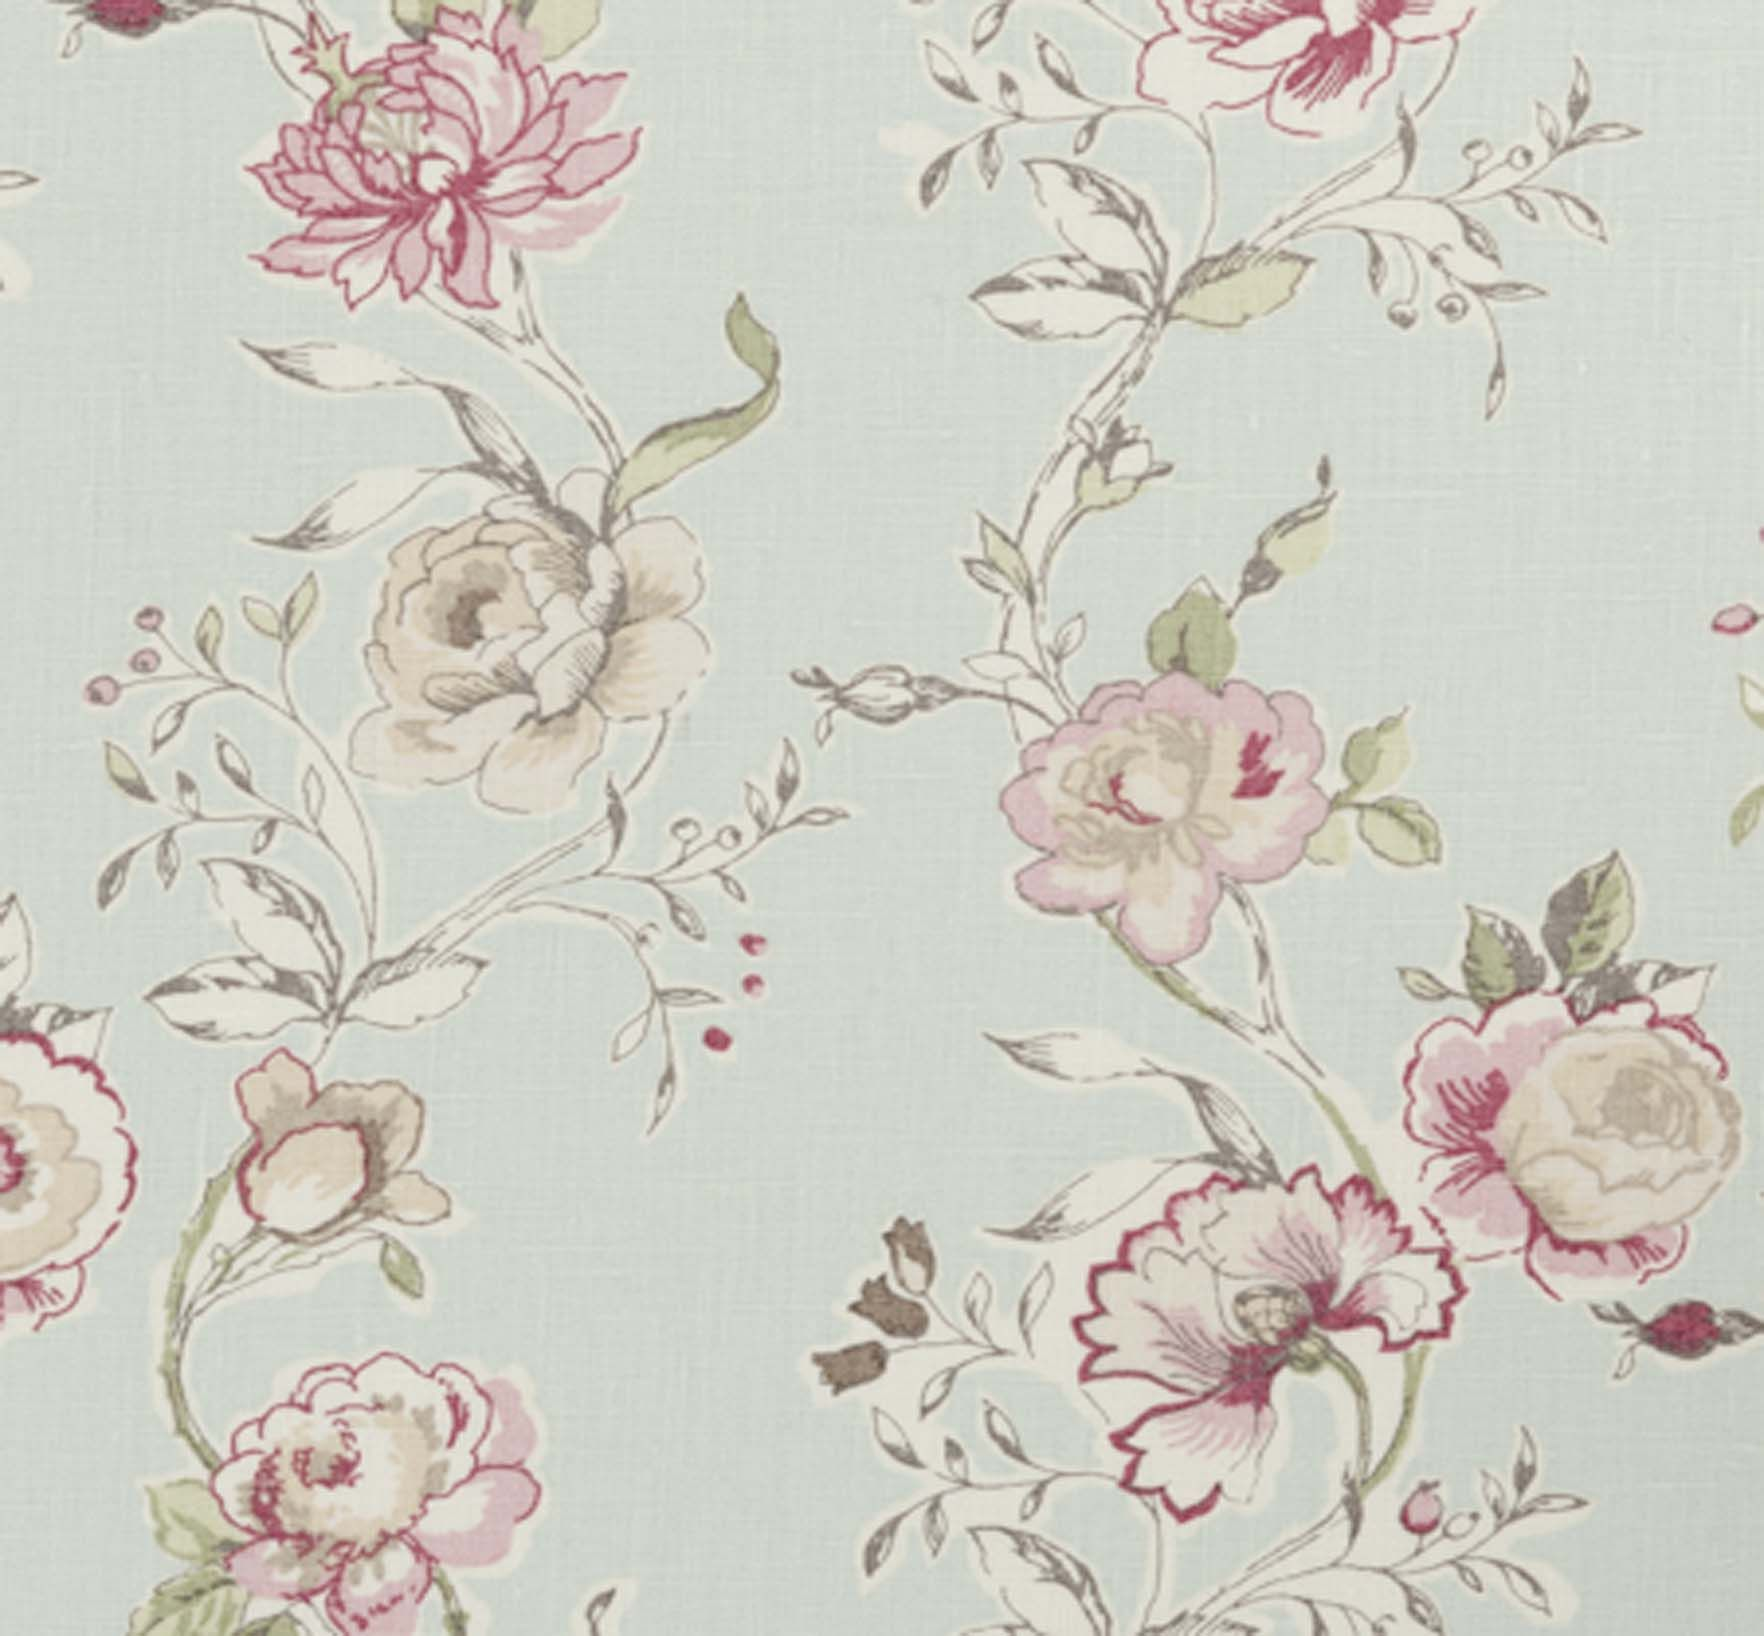 Clarisse Duckegg Wallpaper 24 99 Roll From Dotty Brown Fabric Decor Made To Measure Curtains Printed Linen Fabric